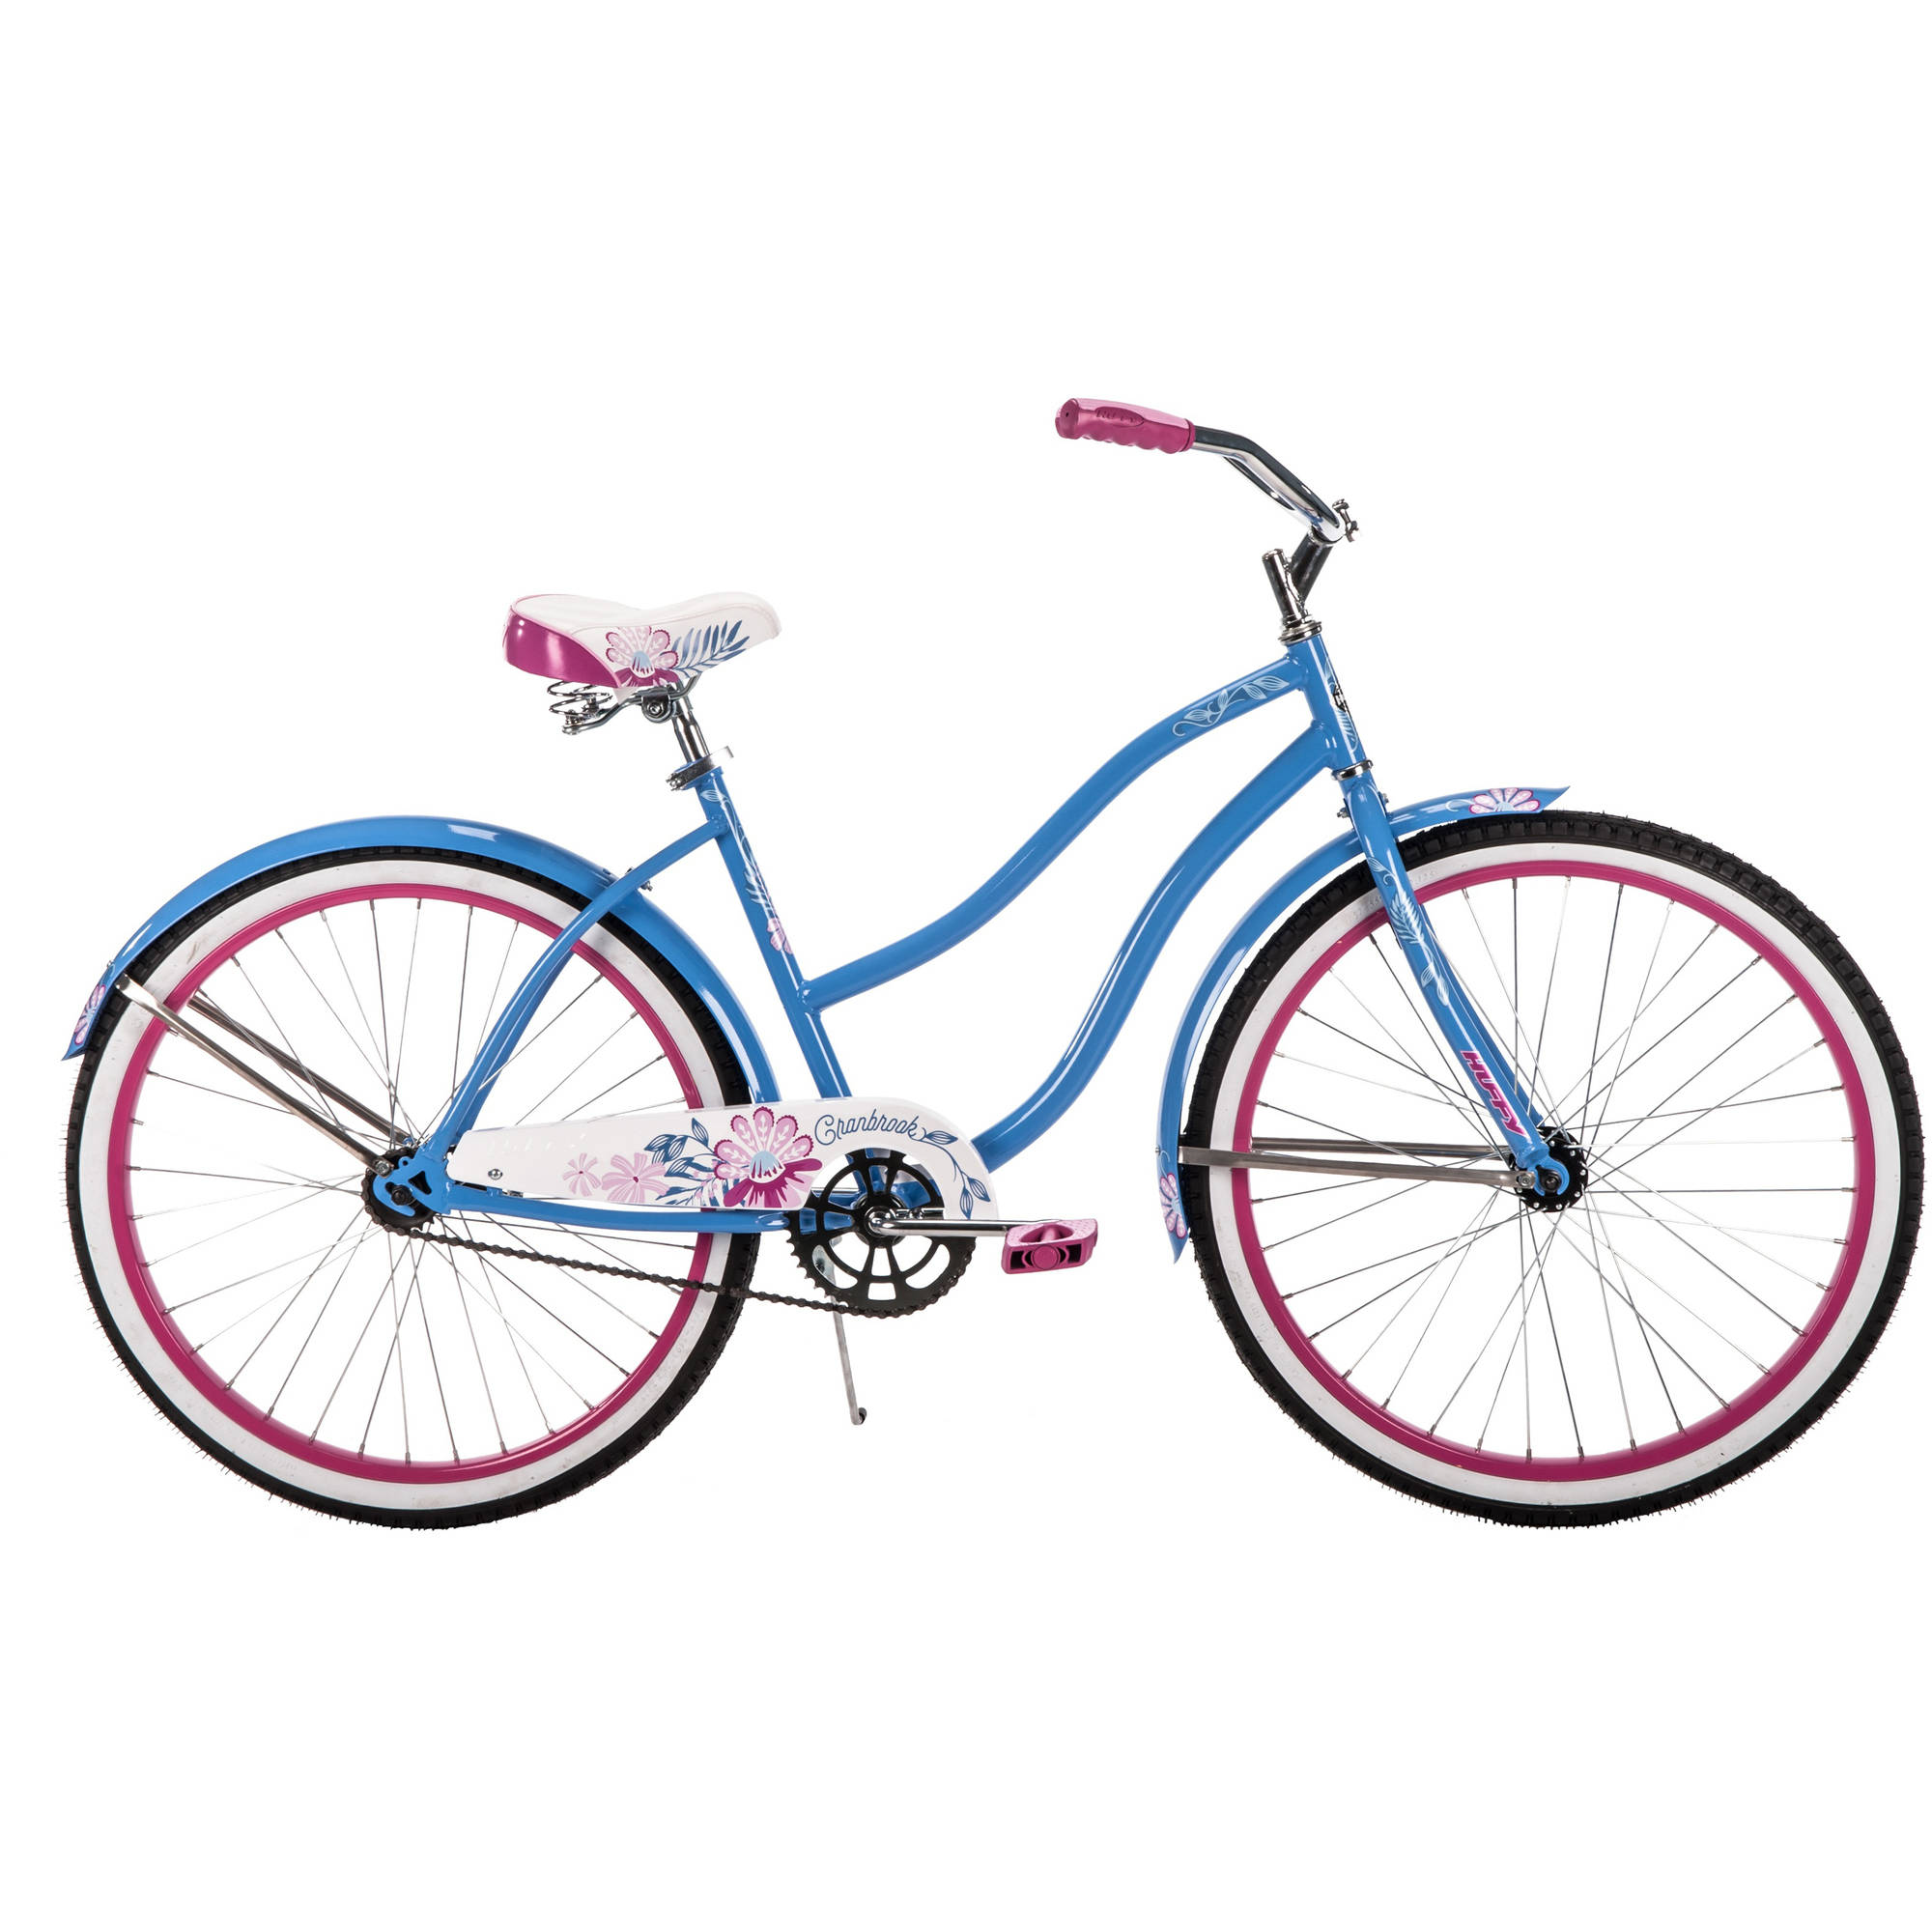 "Huffy 26"" Cranbrook Women's Cruiser Bike, Ocean Blue by Huffy"